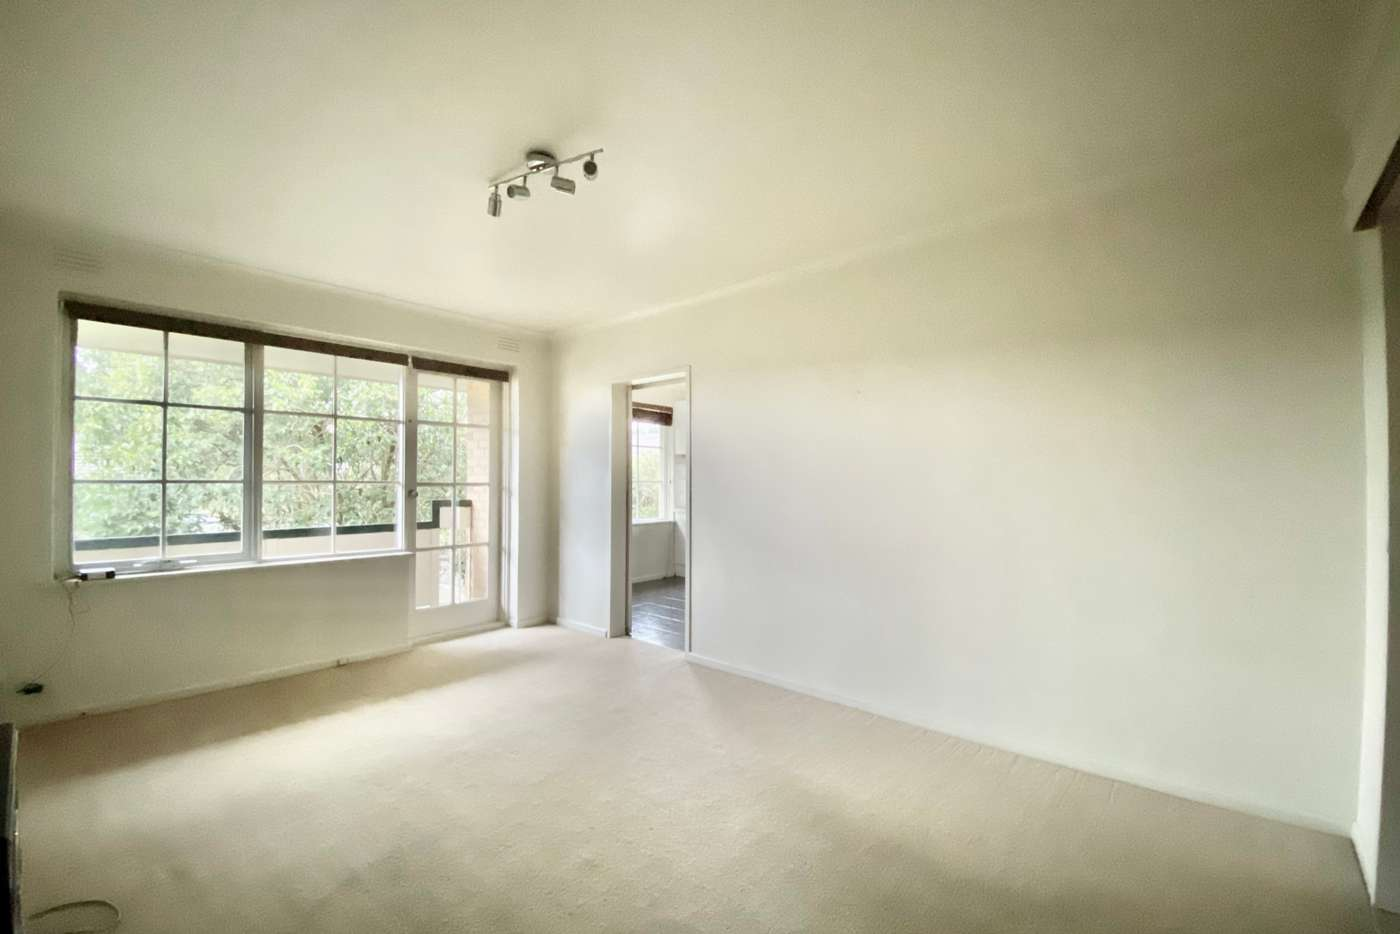 Sixth view of Homely apartment listing, 11/1015 Glenhuntly Road, Caulfield VIC 3162